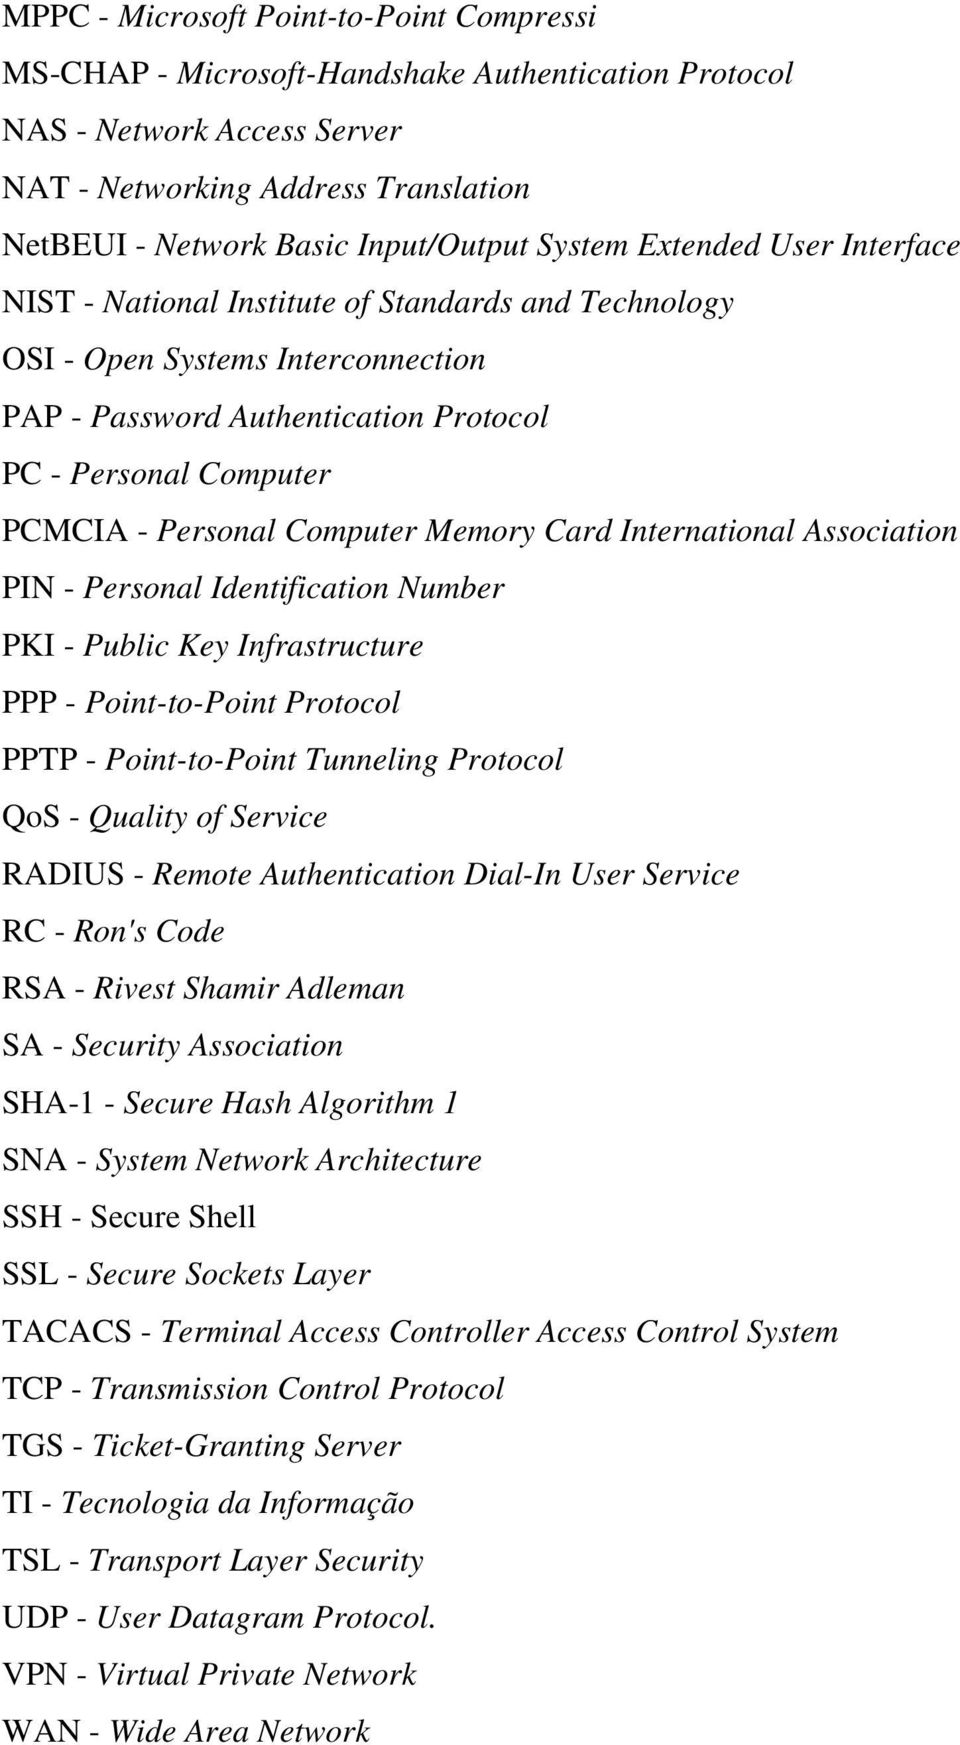 PCMCIA - Personal Computer Memory Card International Association PIN - Personal Identification Number PKI - Public Key Infrastructure PPP - Point-to-Point Protocol PPTP - Point-to-Point Tunneling